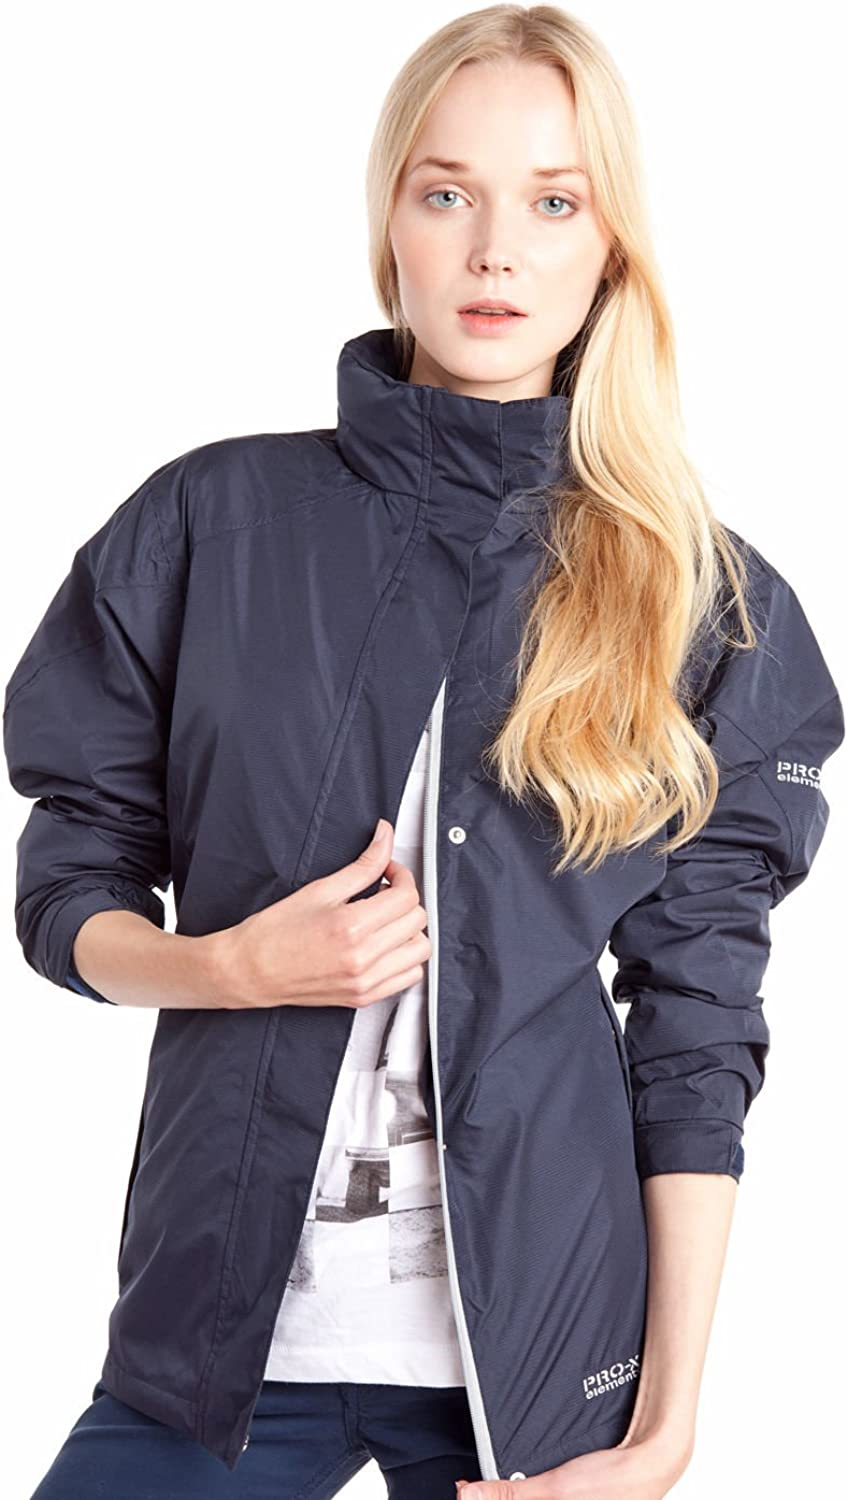 PRO-X elements Women's Carrie Jacket